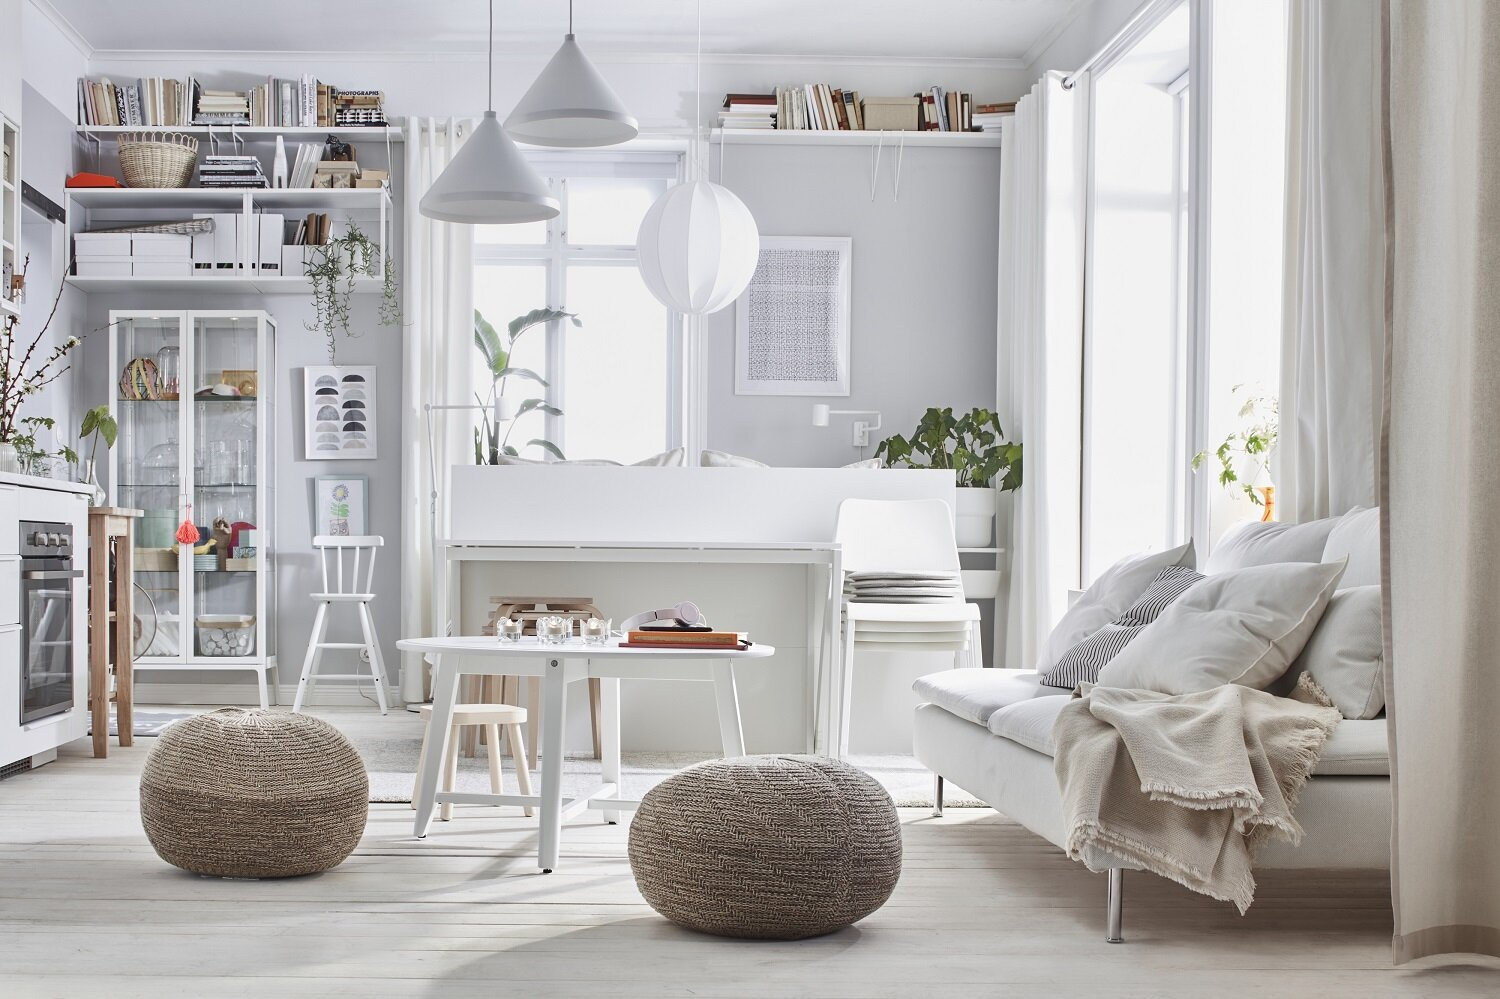 12 Dreamy living room ideas from IKEA 12 catalogue - Daily Dream